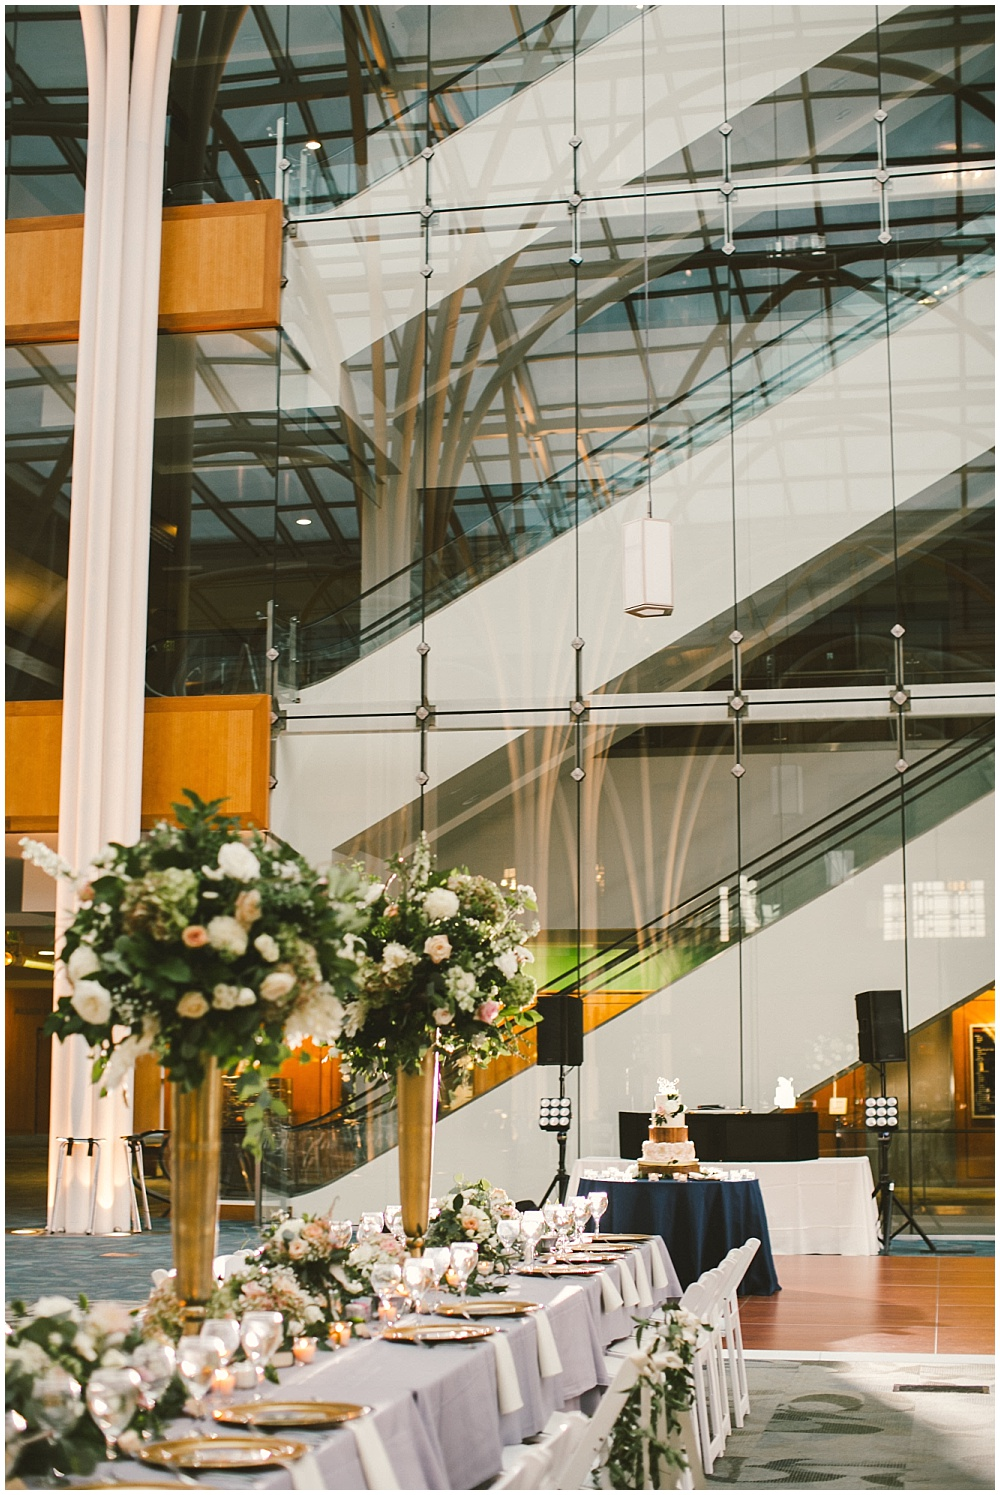 Library wedding with garden-esk floral centerpieces | Indianapolis Central Library Wedding by Jennifer Van Elk Photography & Jessica Dum Wedding Coordination